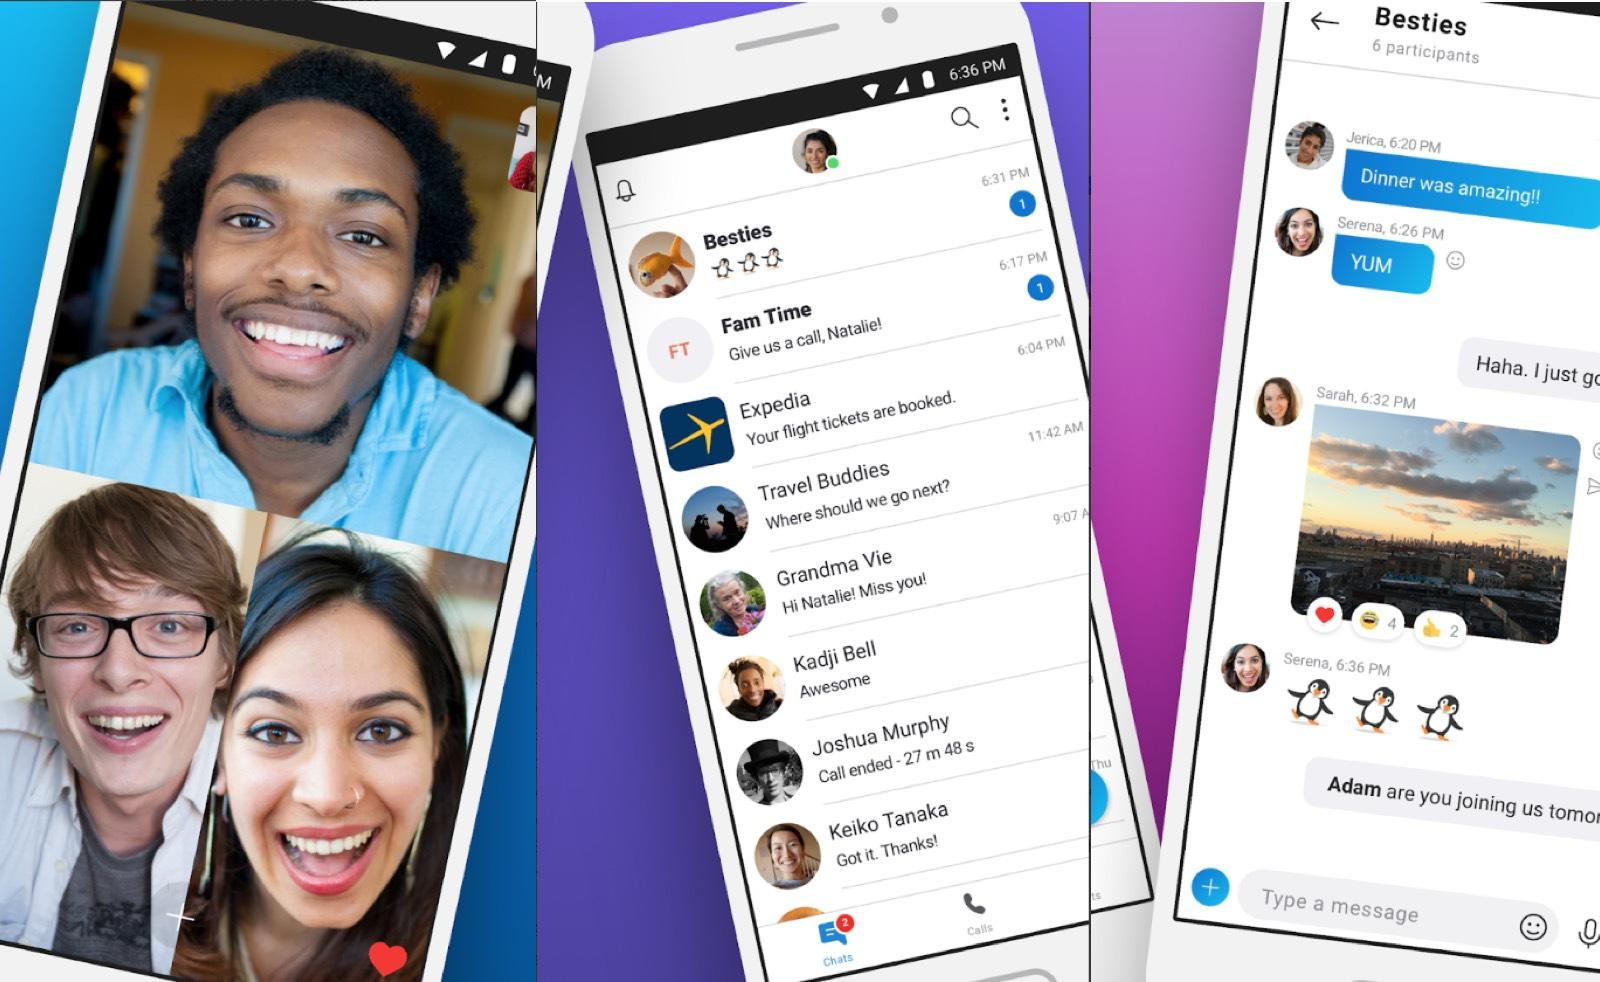 Skype vs. Zoom: Video chat apps compared